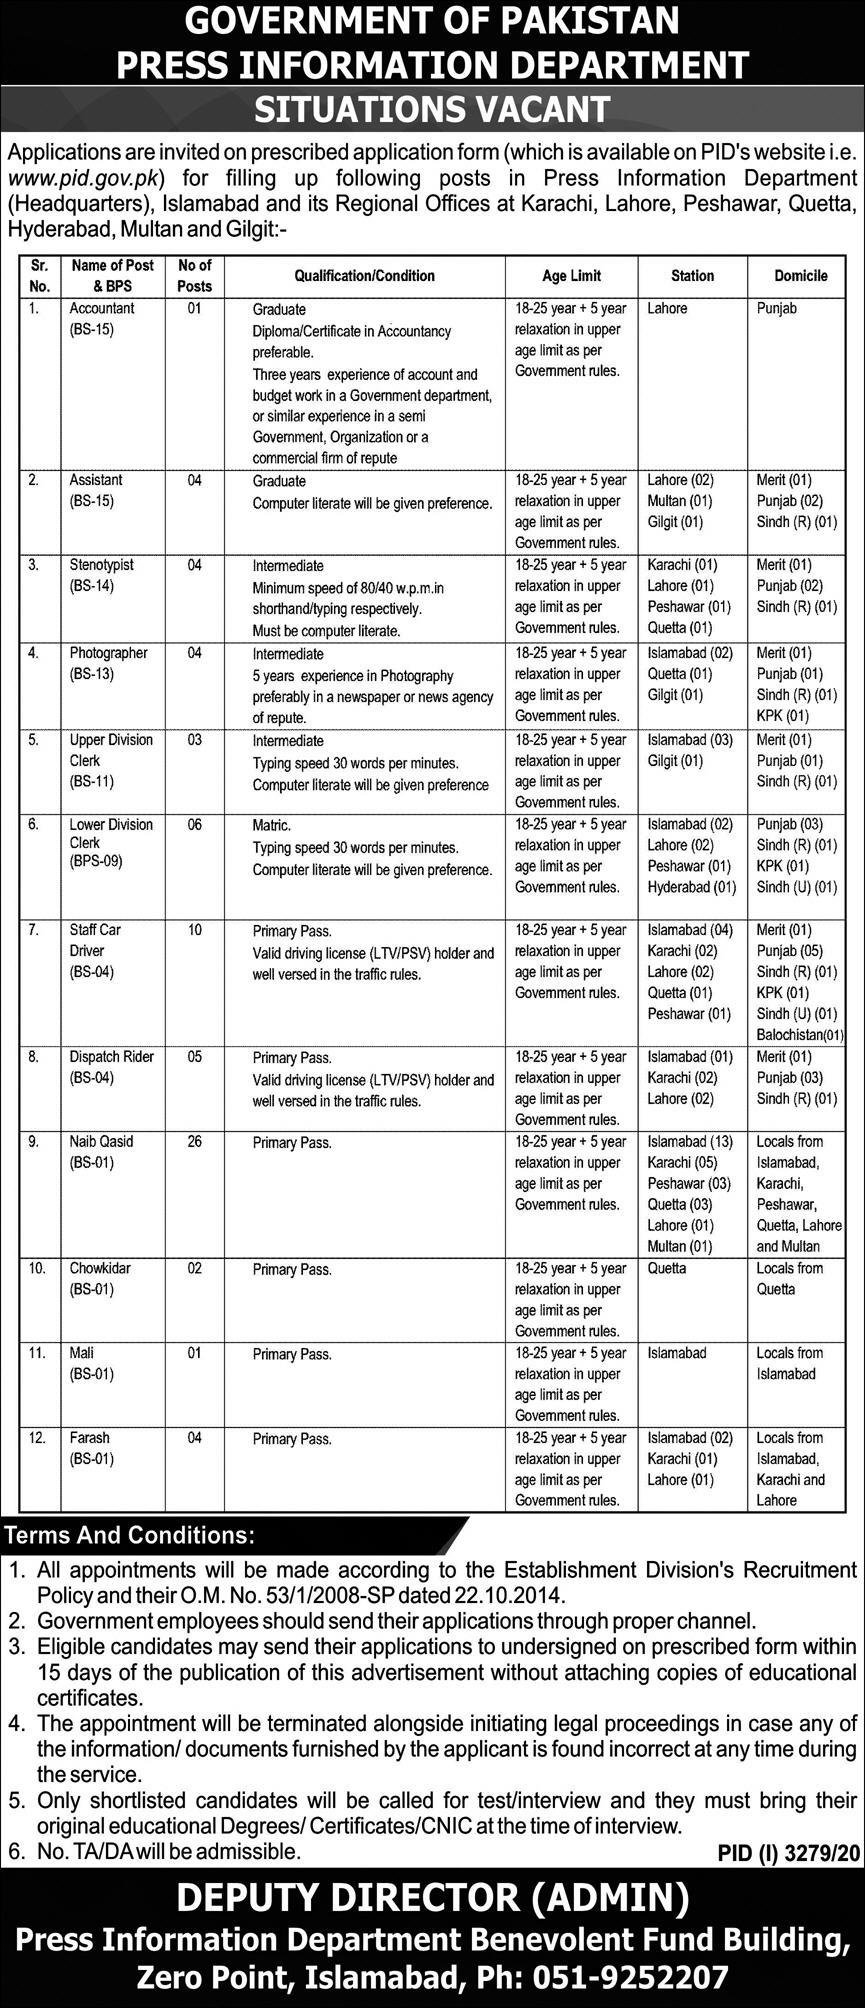 Press Information Department PID Jobs 2021 for Accountant, Assistant, Stenotypist, Photographer, Upper Division Clerk, UDC, Clerk, Lower Division Clerk, LDC and more